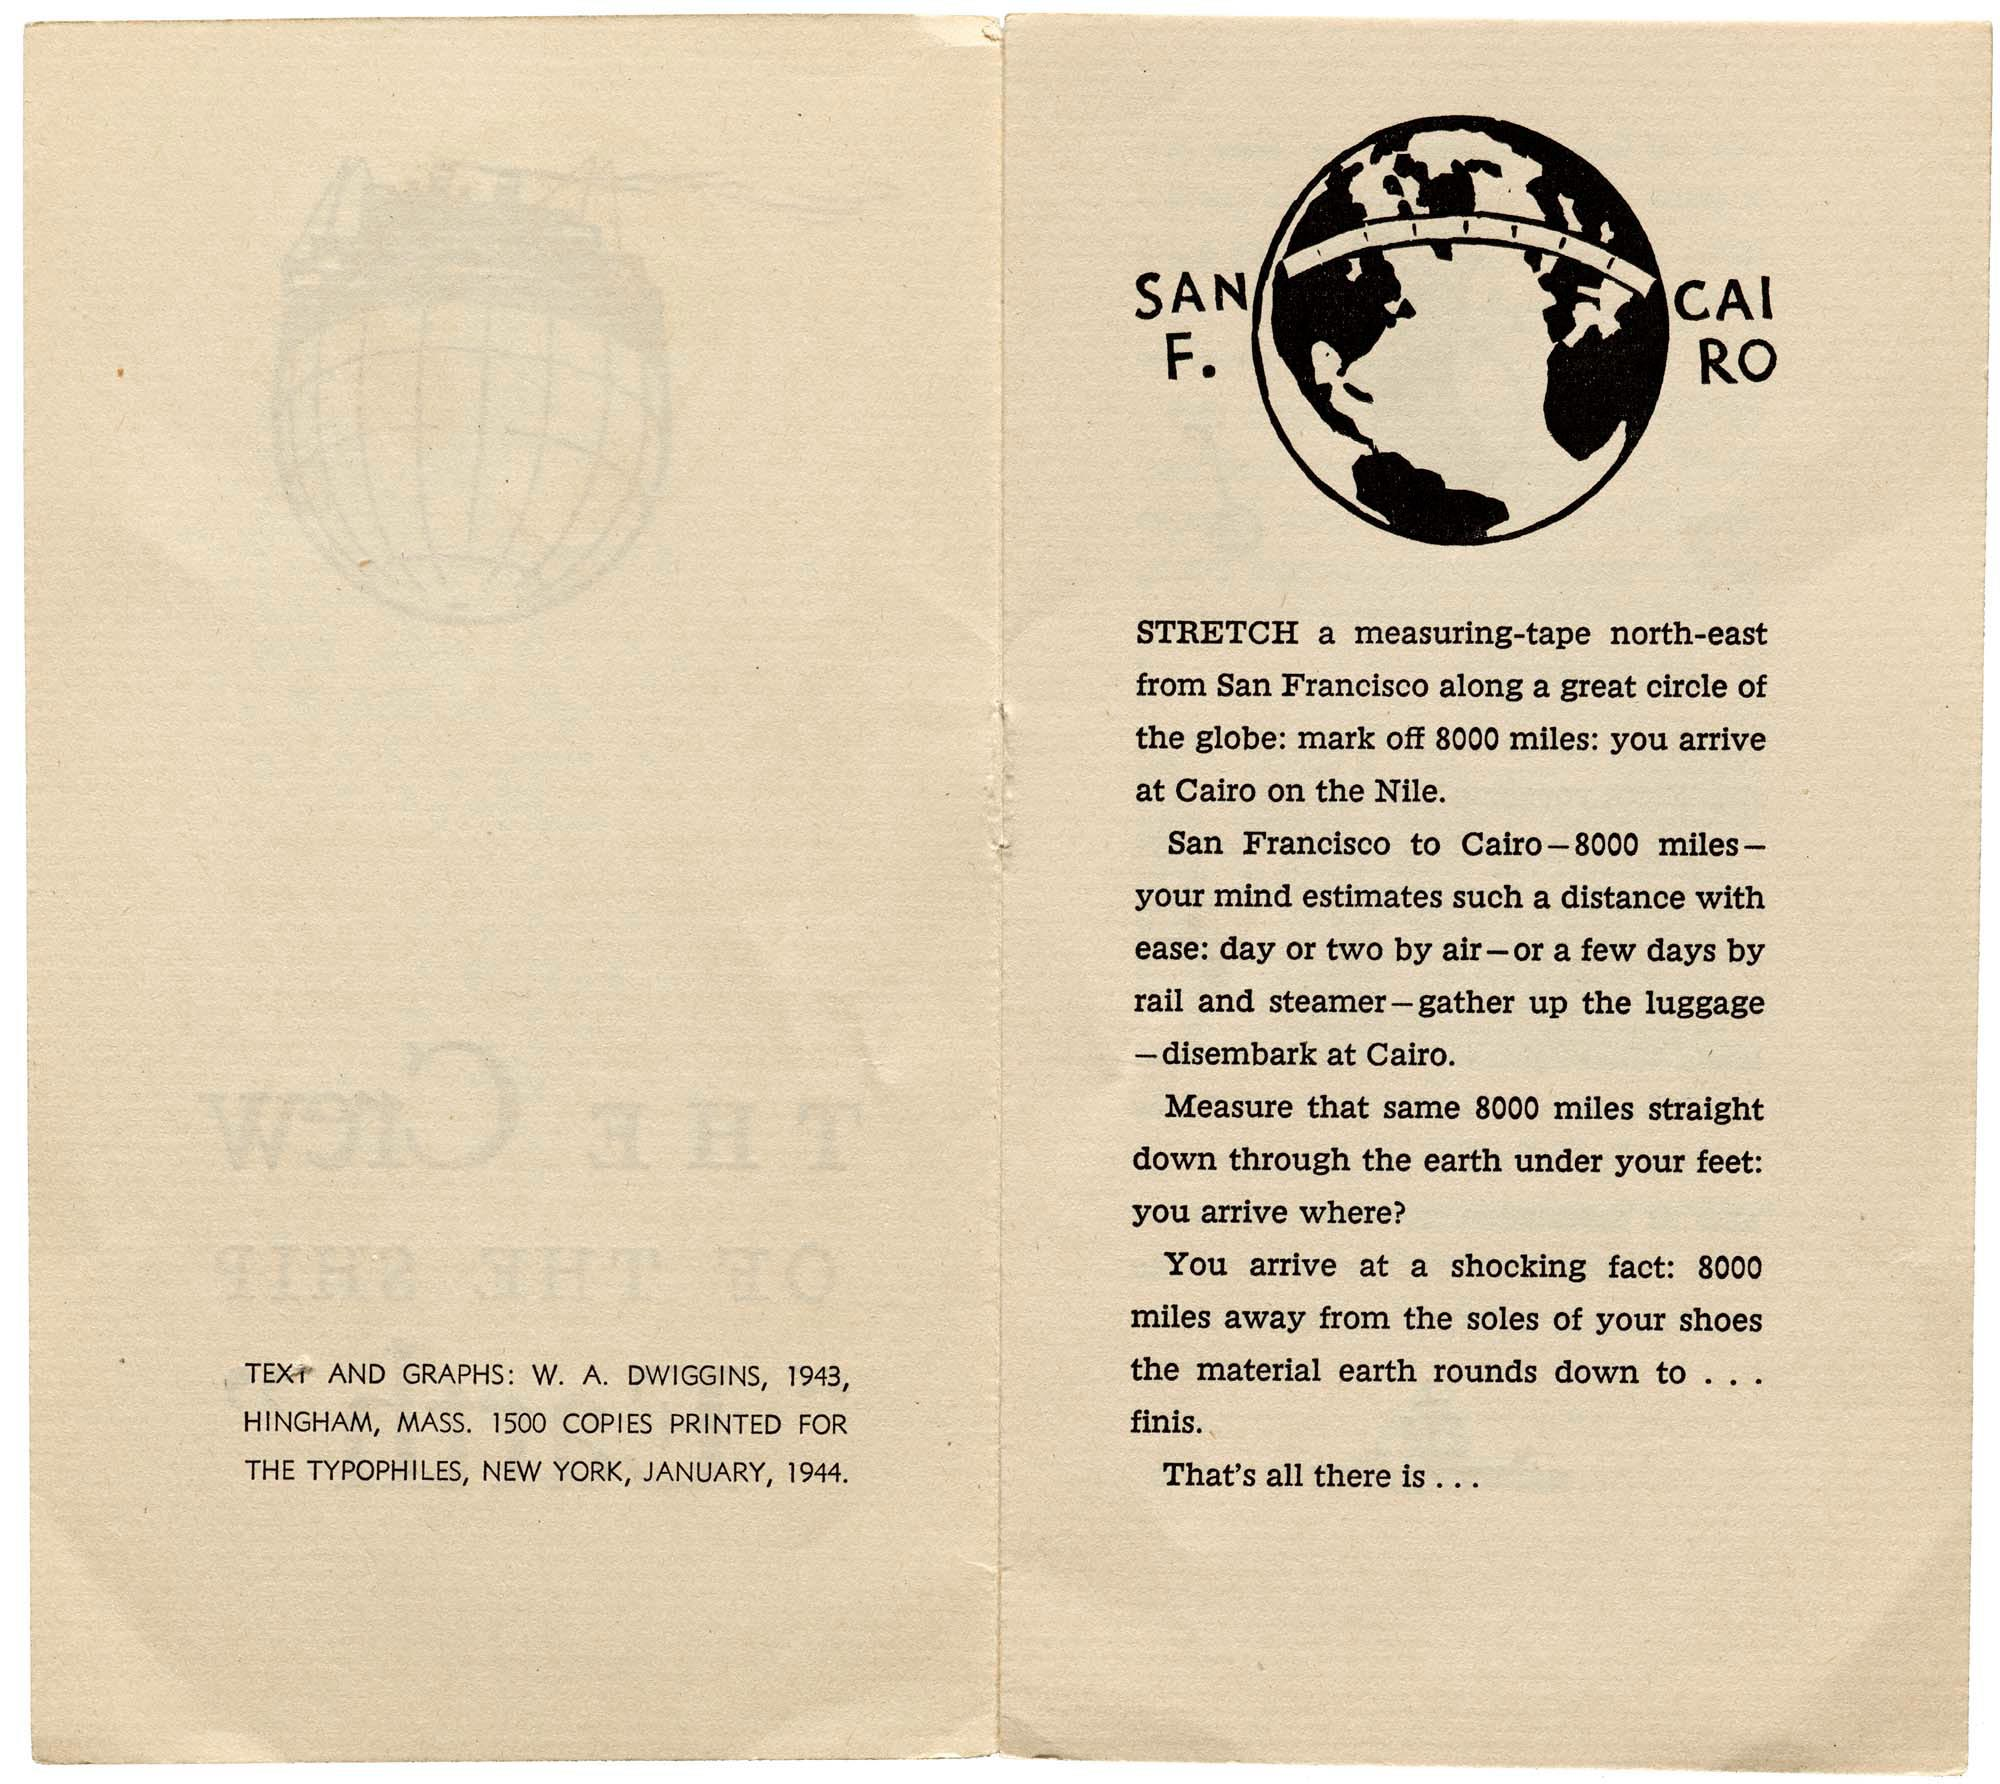 W. A. Dwiggins, Good Ship Earth, Typophiles, NY, 1943 - pages 2–3